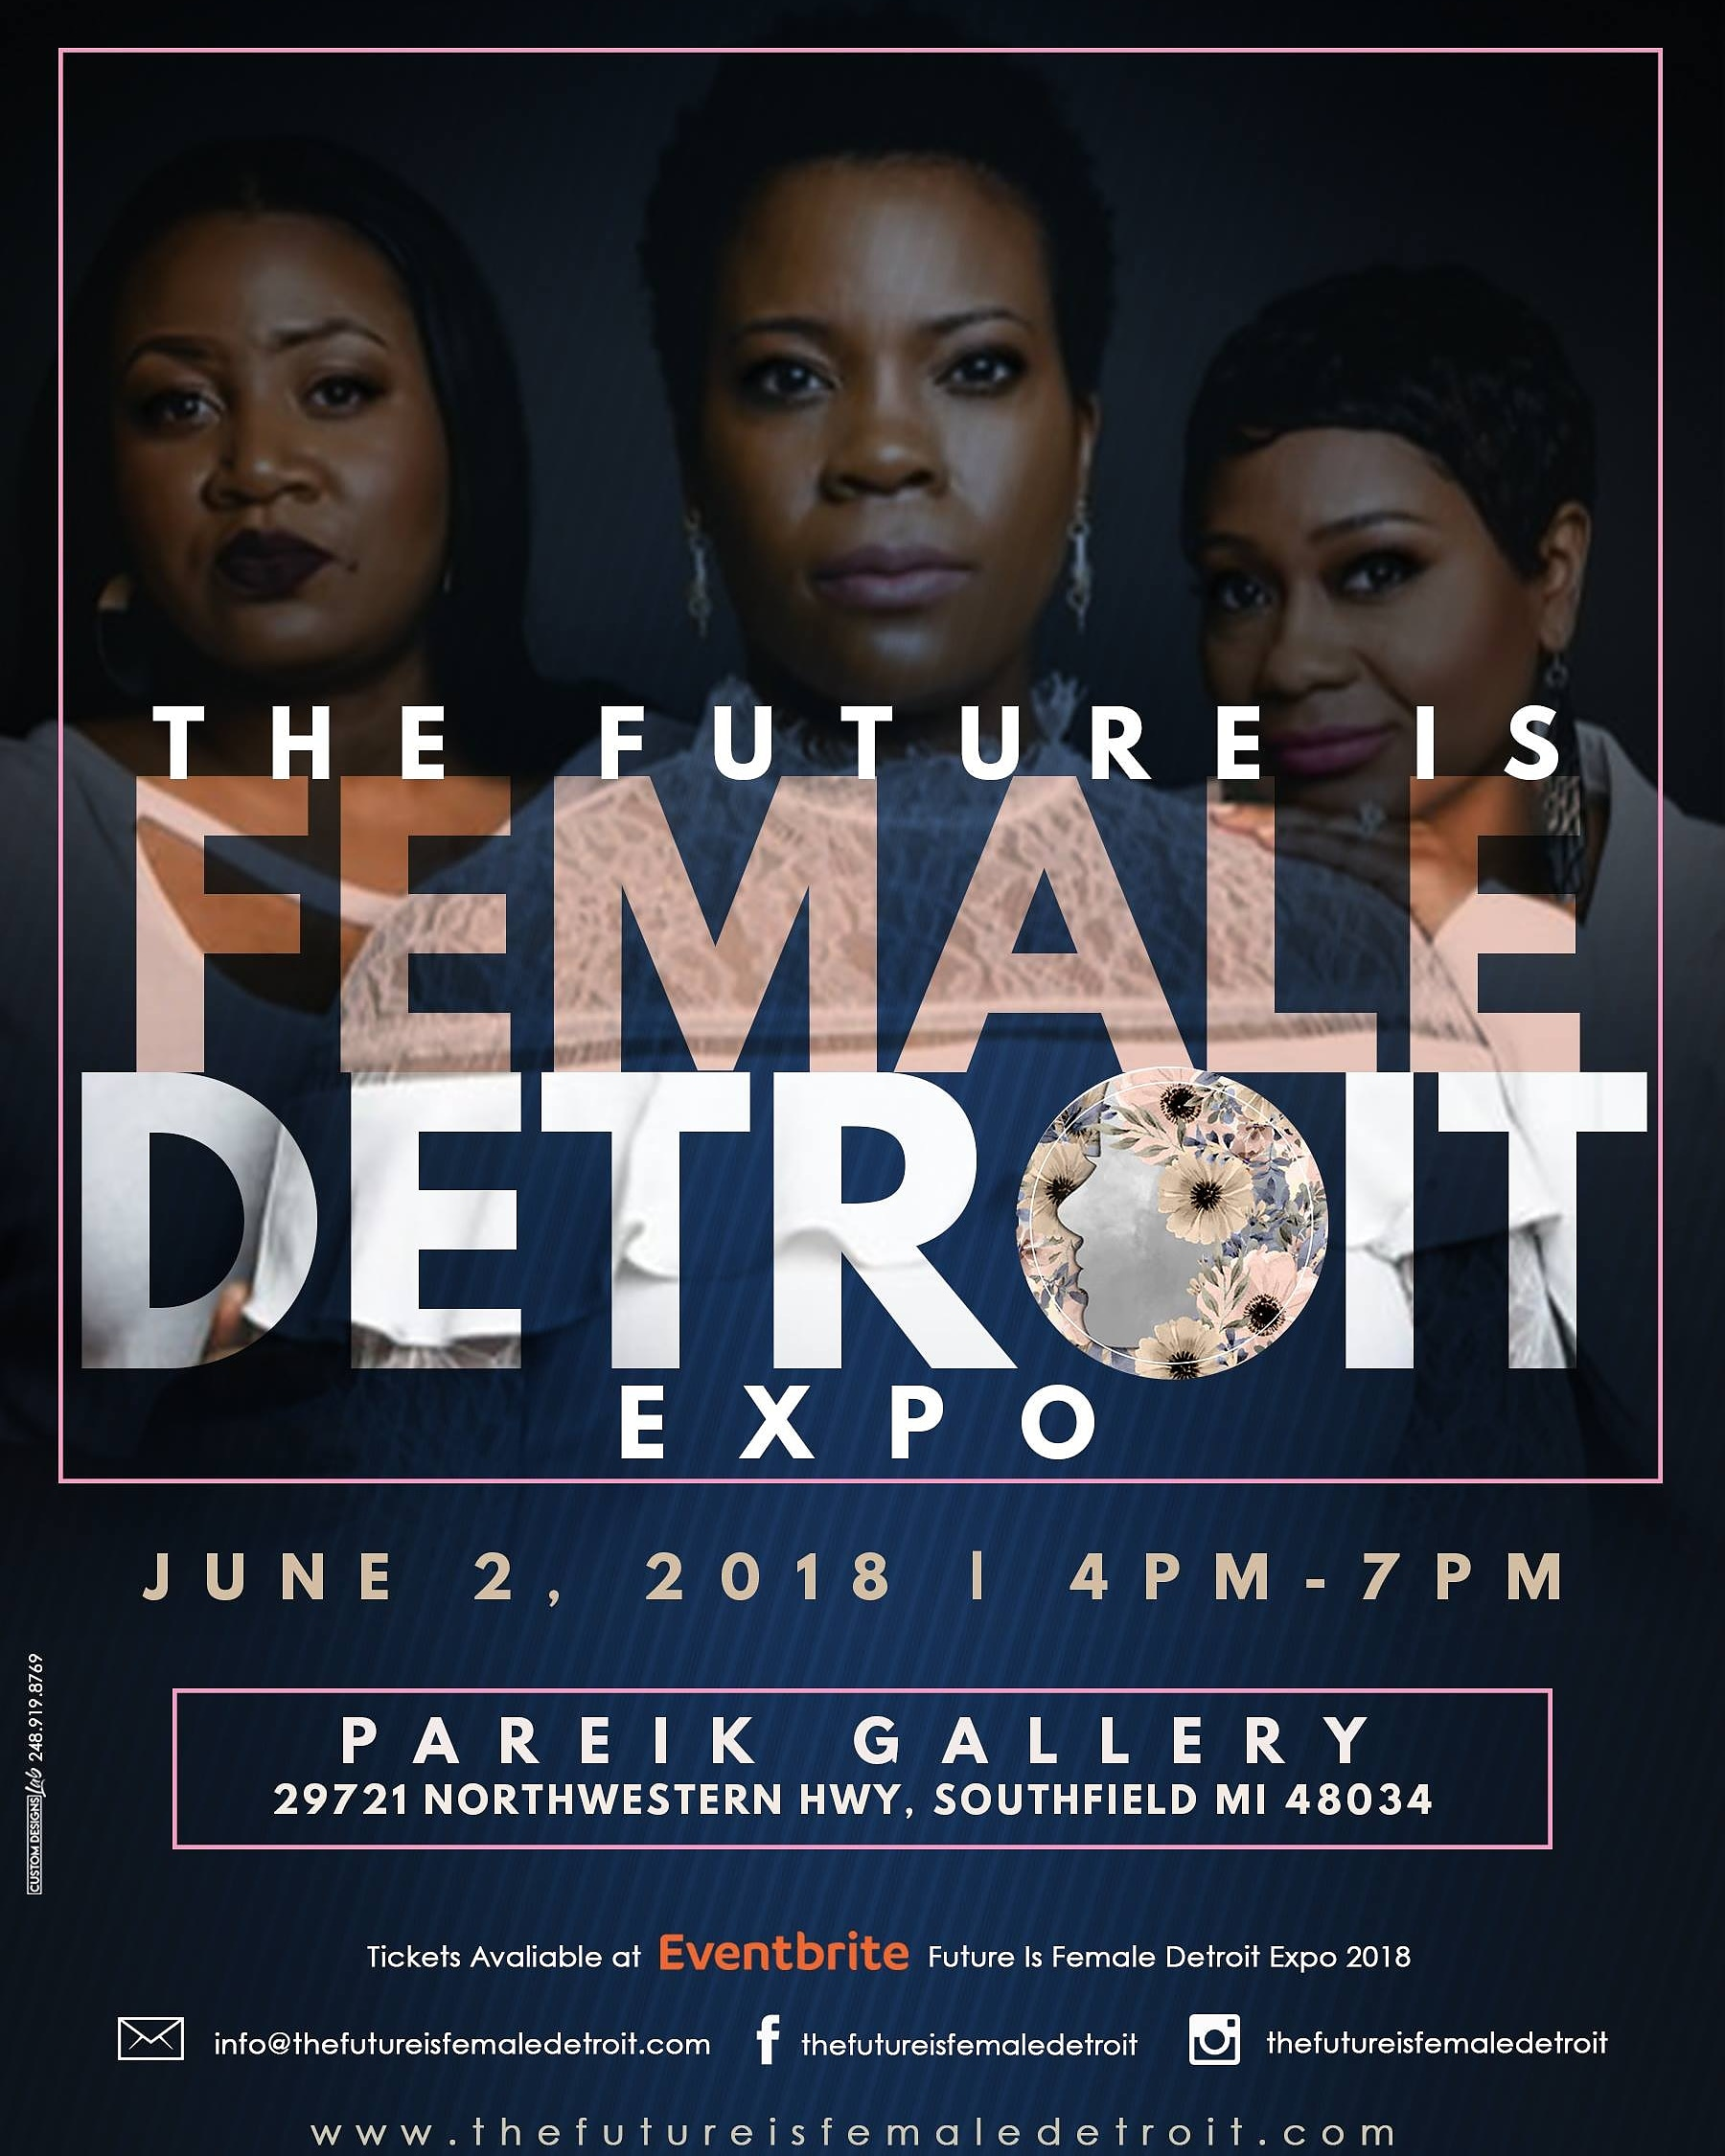 The Future is Female Detroit Expo